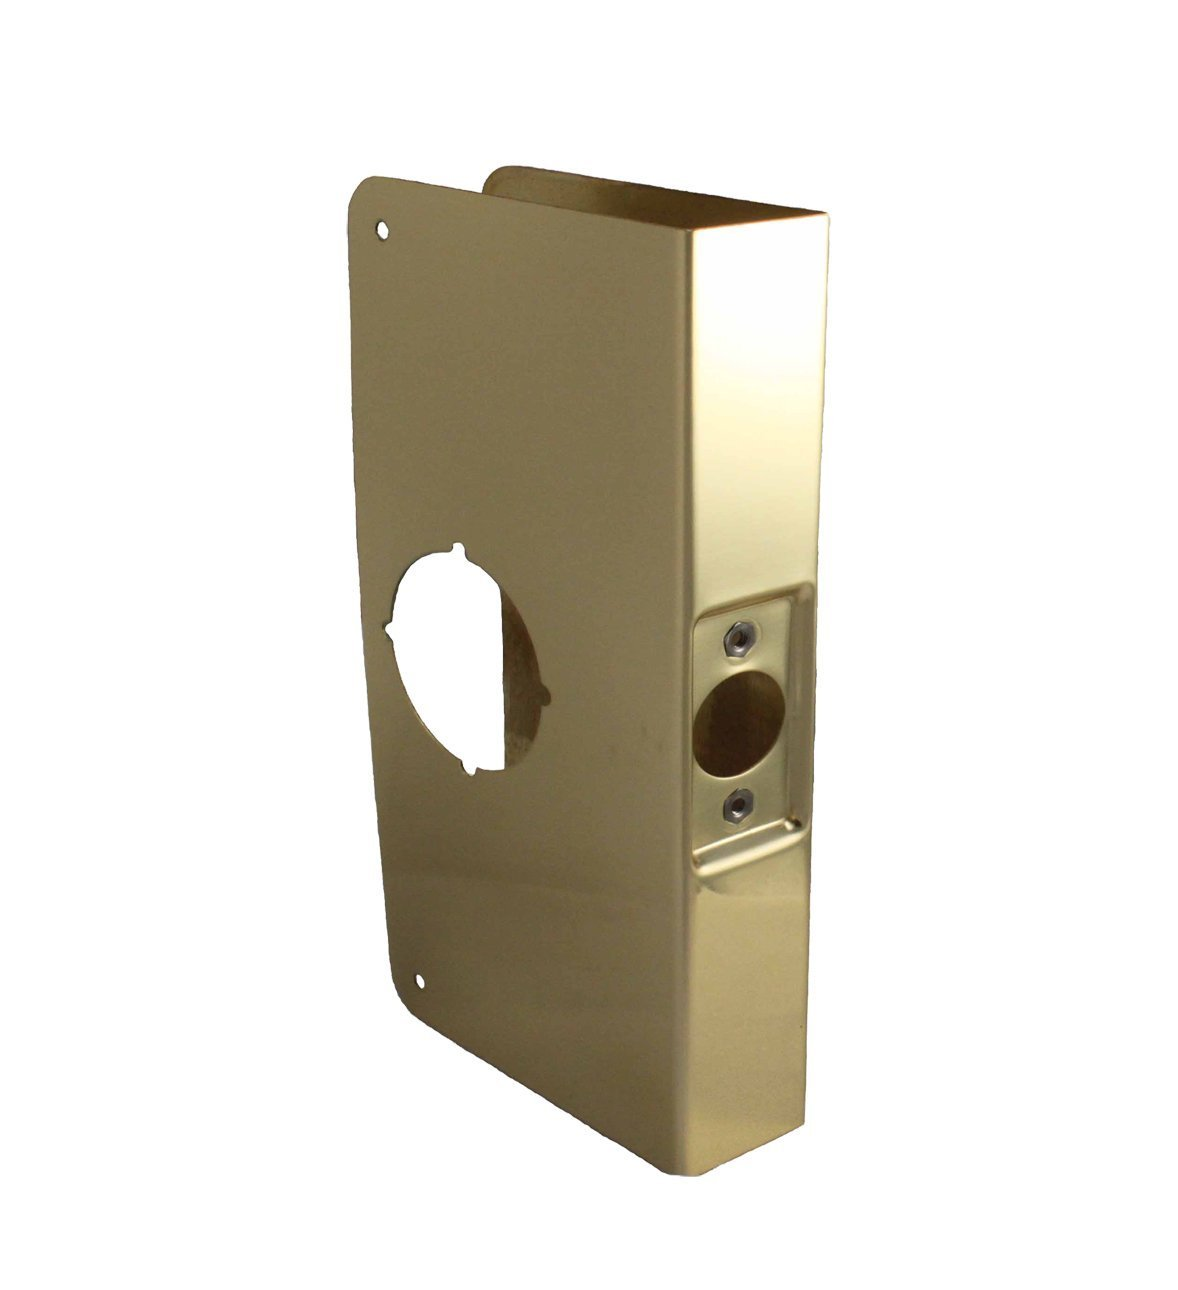 "Don-Jo 12-CW-PB Stainless Steel Wrap-Around Plate, 5-1/8"" x 12"", For Cylinder Door Lock with 2-1/8"" Hole, 2-3/4"" Backset, Polished Brass Finish"